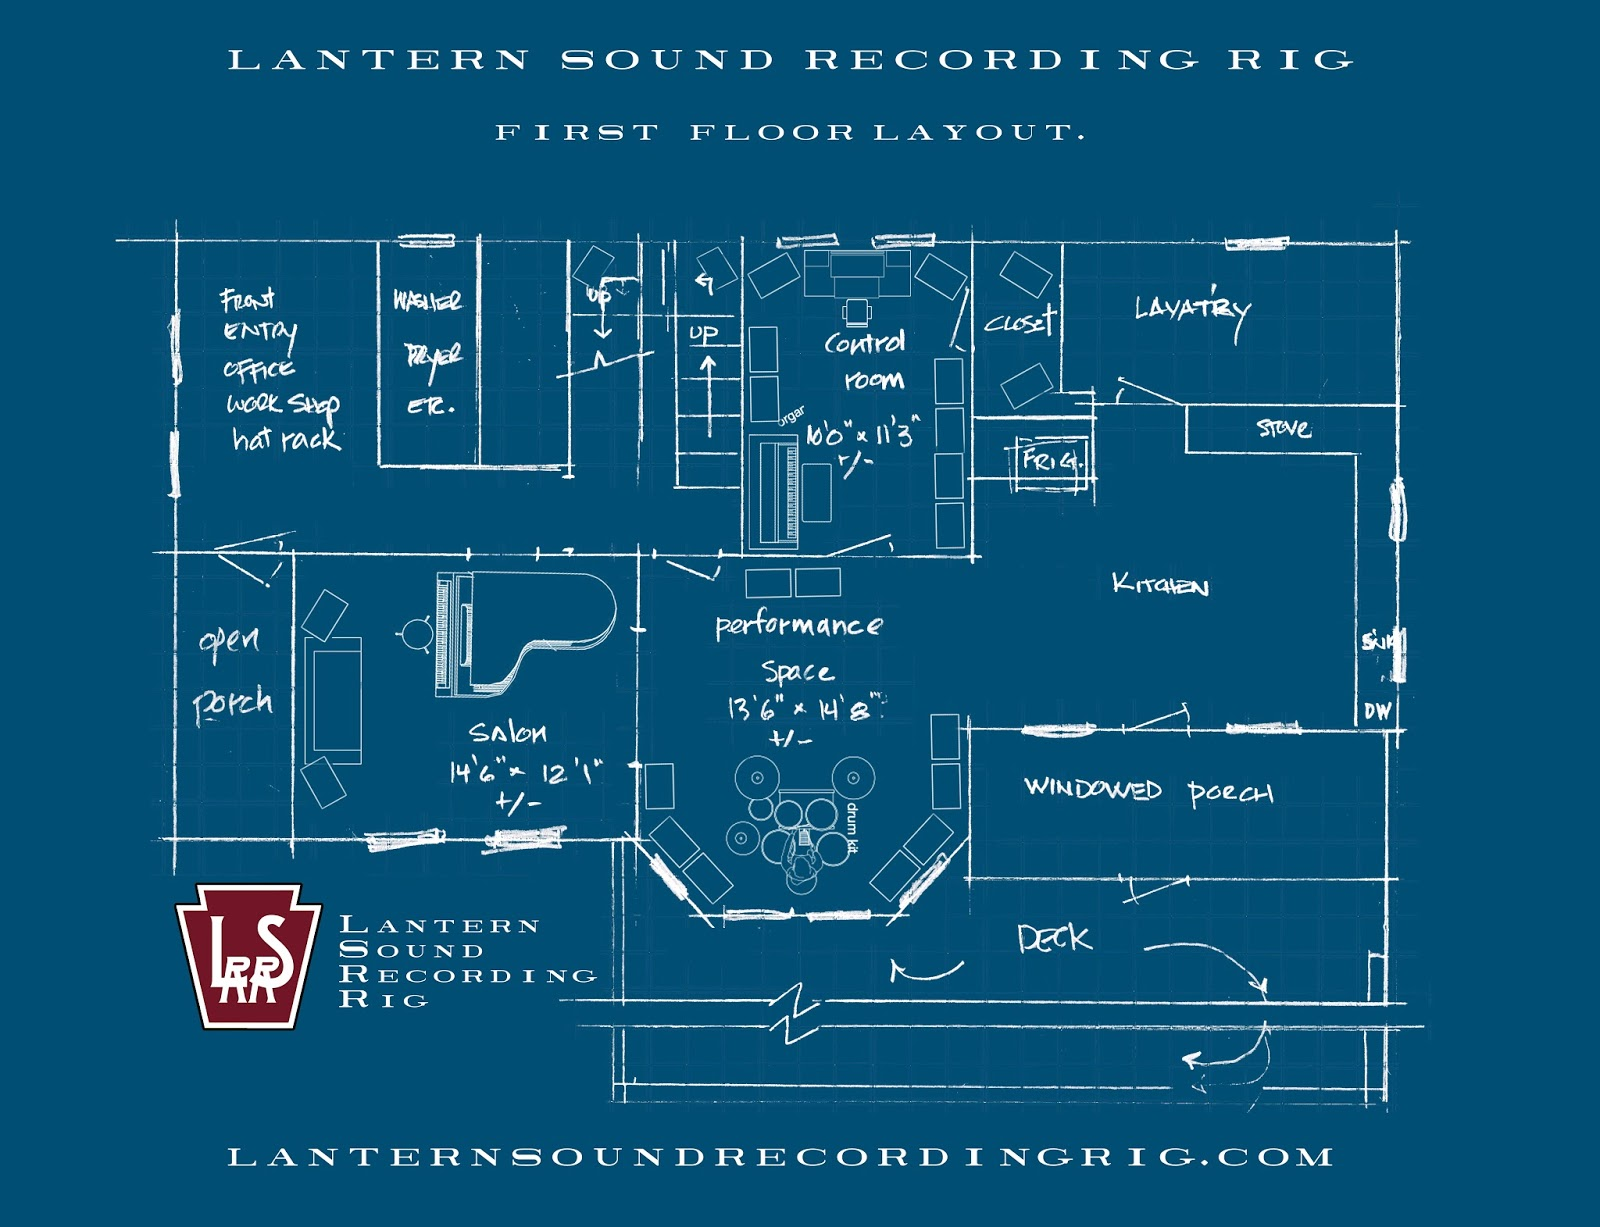 Salon blueprint homedics cool mist ultrasonic humidifier the lantern sound recording rig route of the relaxed recording lsrr2bfirst2bfloor2bblueprint lantern sound recording rig floor planhtml salon blueprint malvernweather Image collections